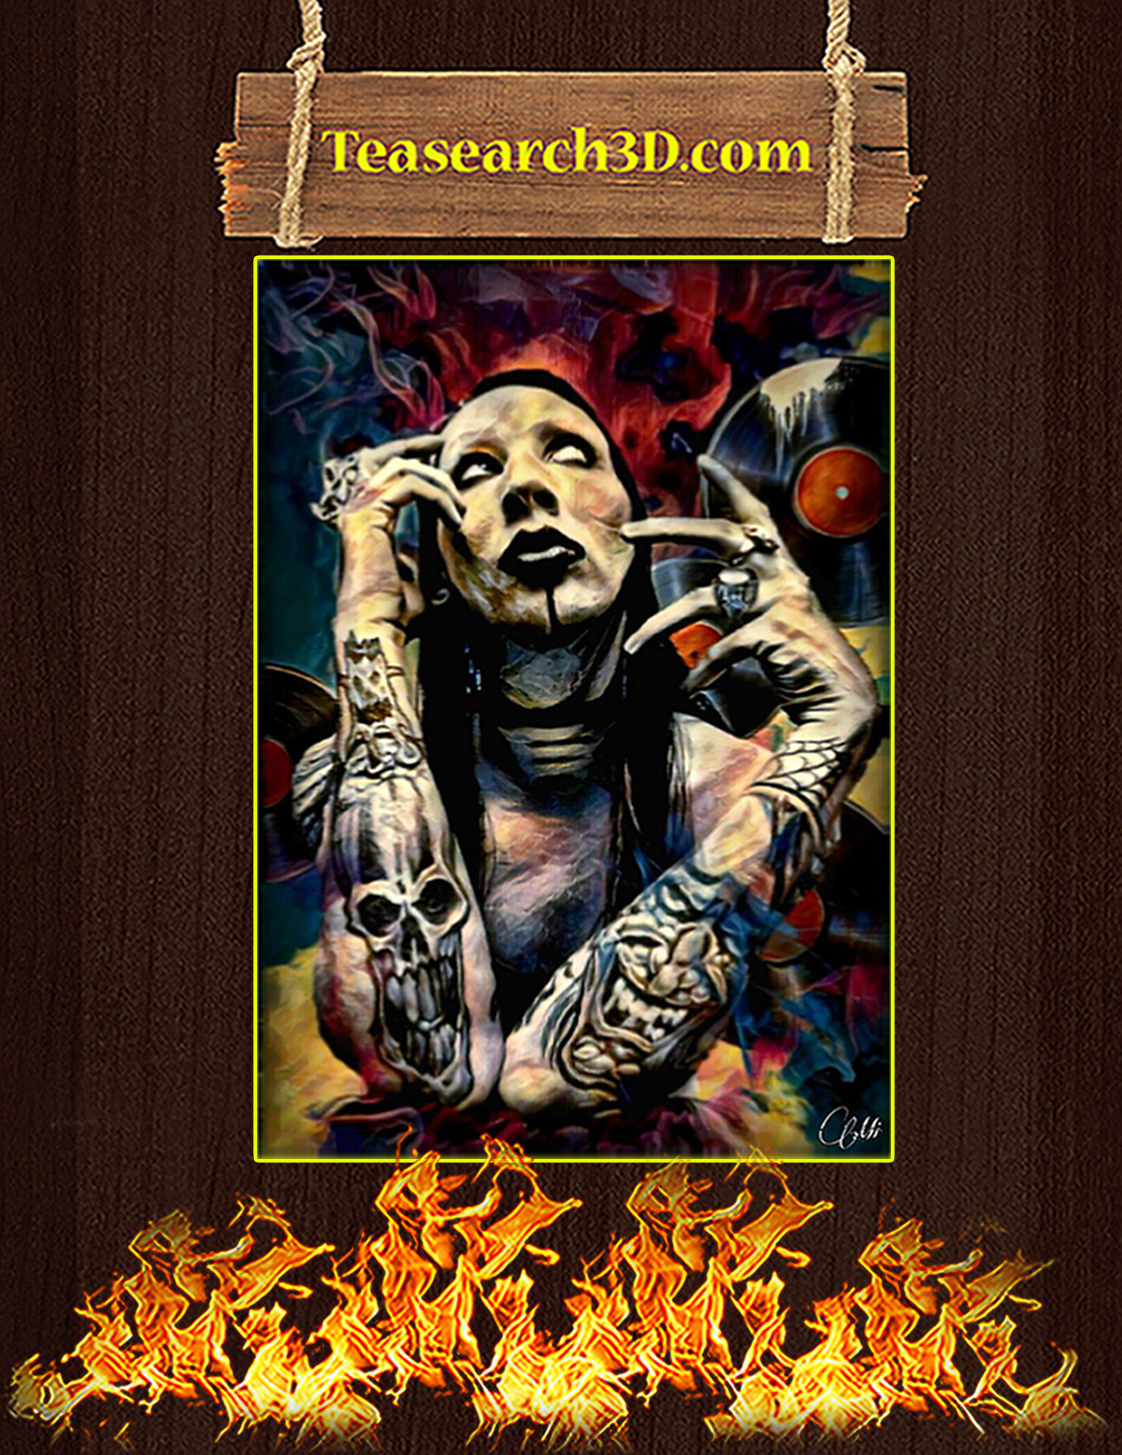 Marilyn manson poster A3